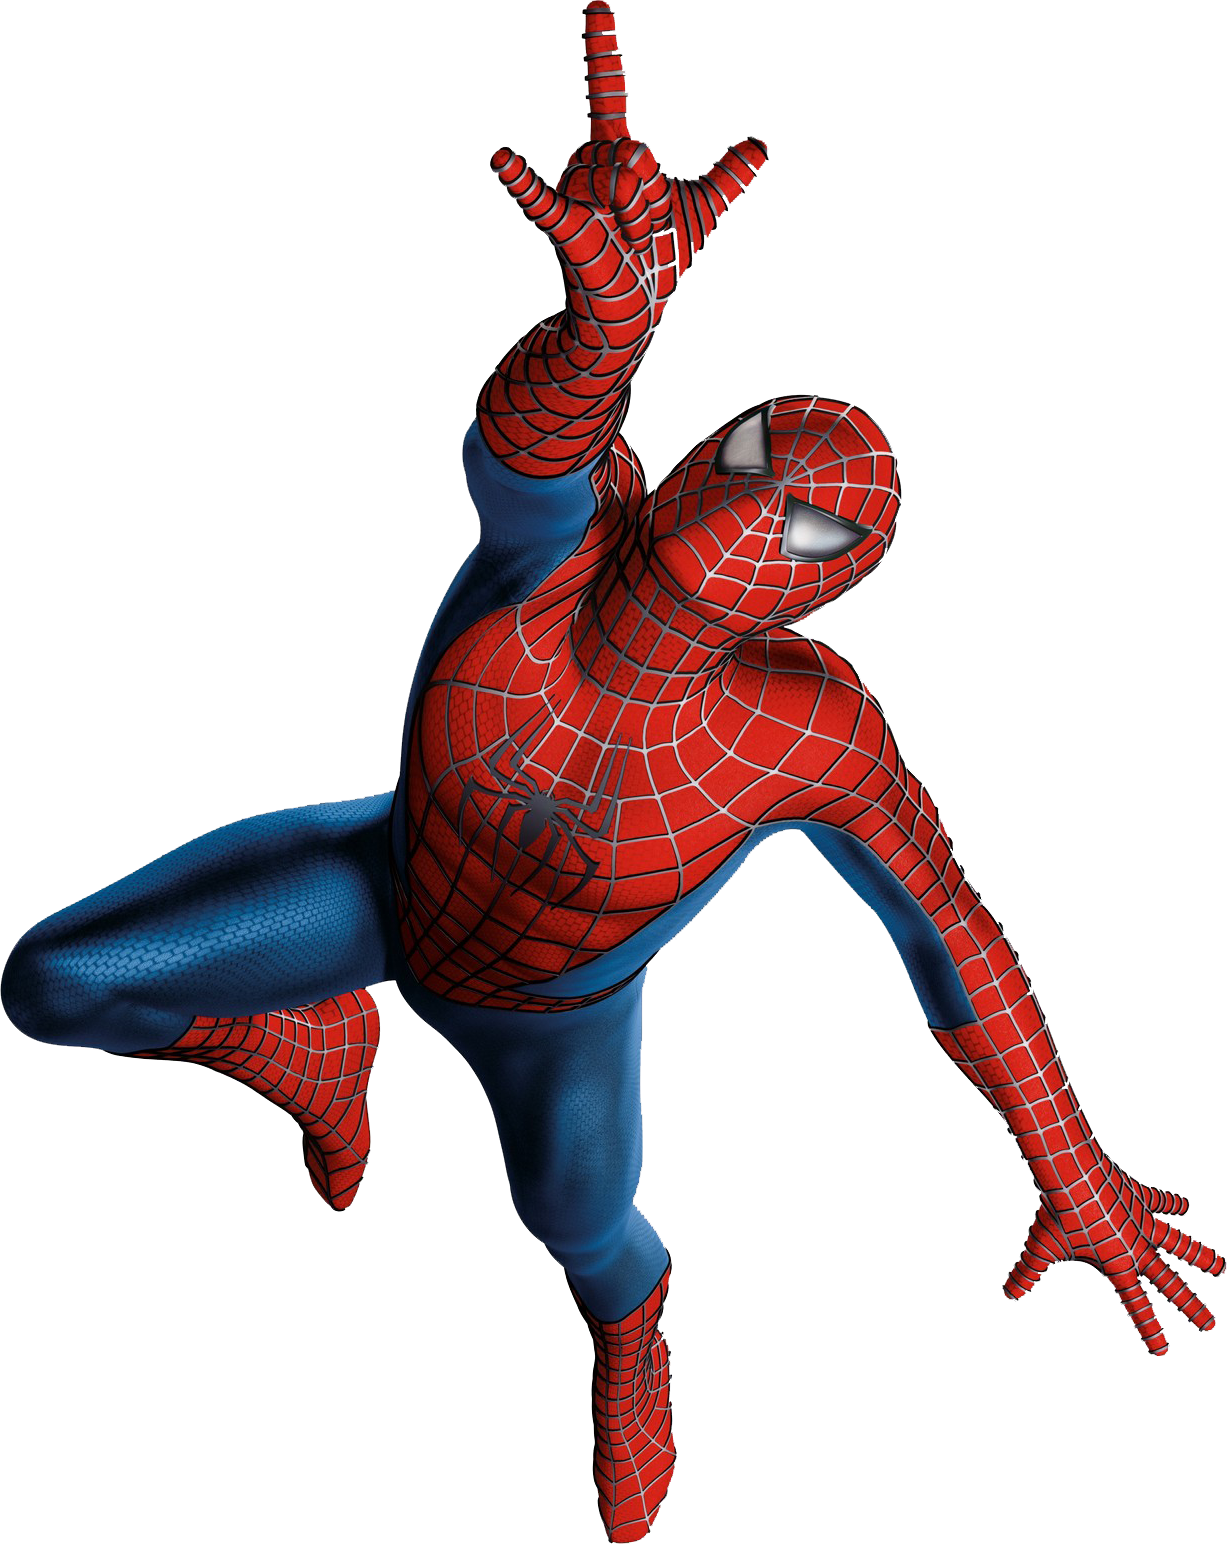 clip art library download Spiderman web clipart. Spider man png images